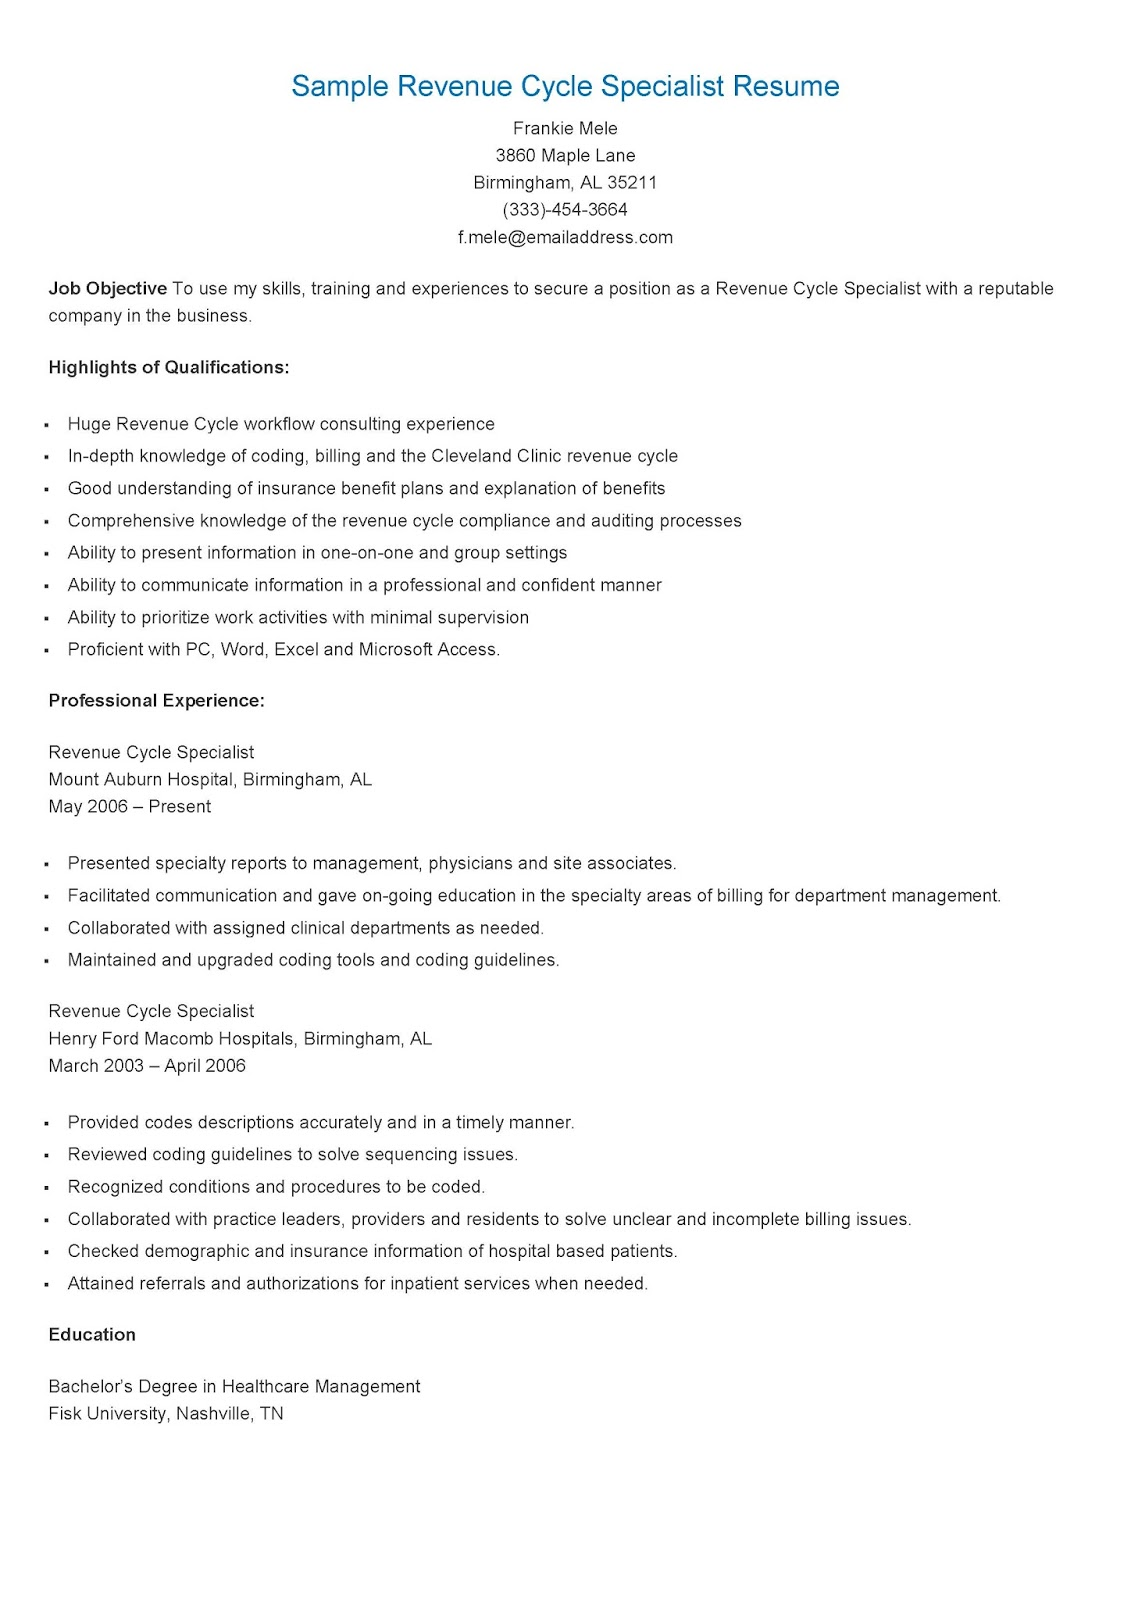 resume samples  sample revenue cycle specialist resume